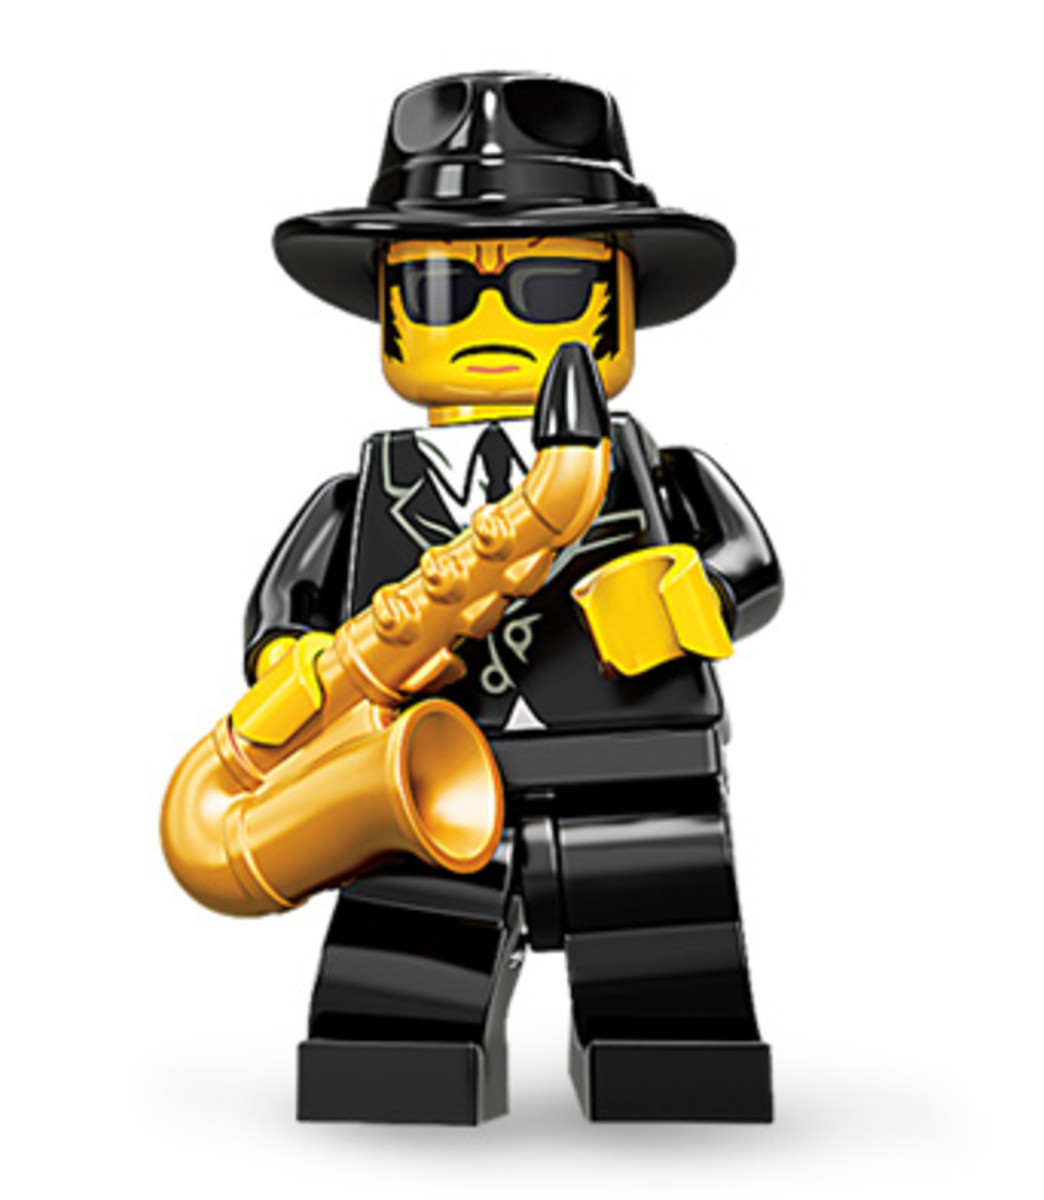 This LEGO Mini-figure looks a lot like a famous movie character...I think he's on a mission from God.